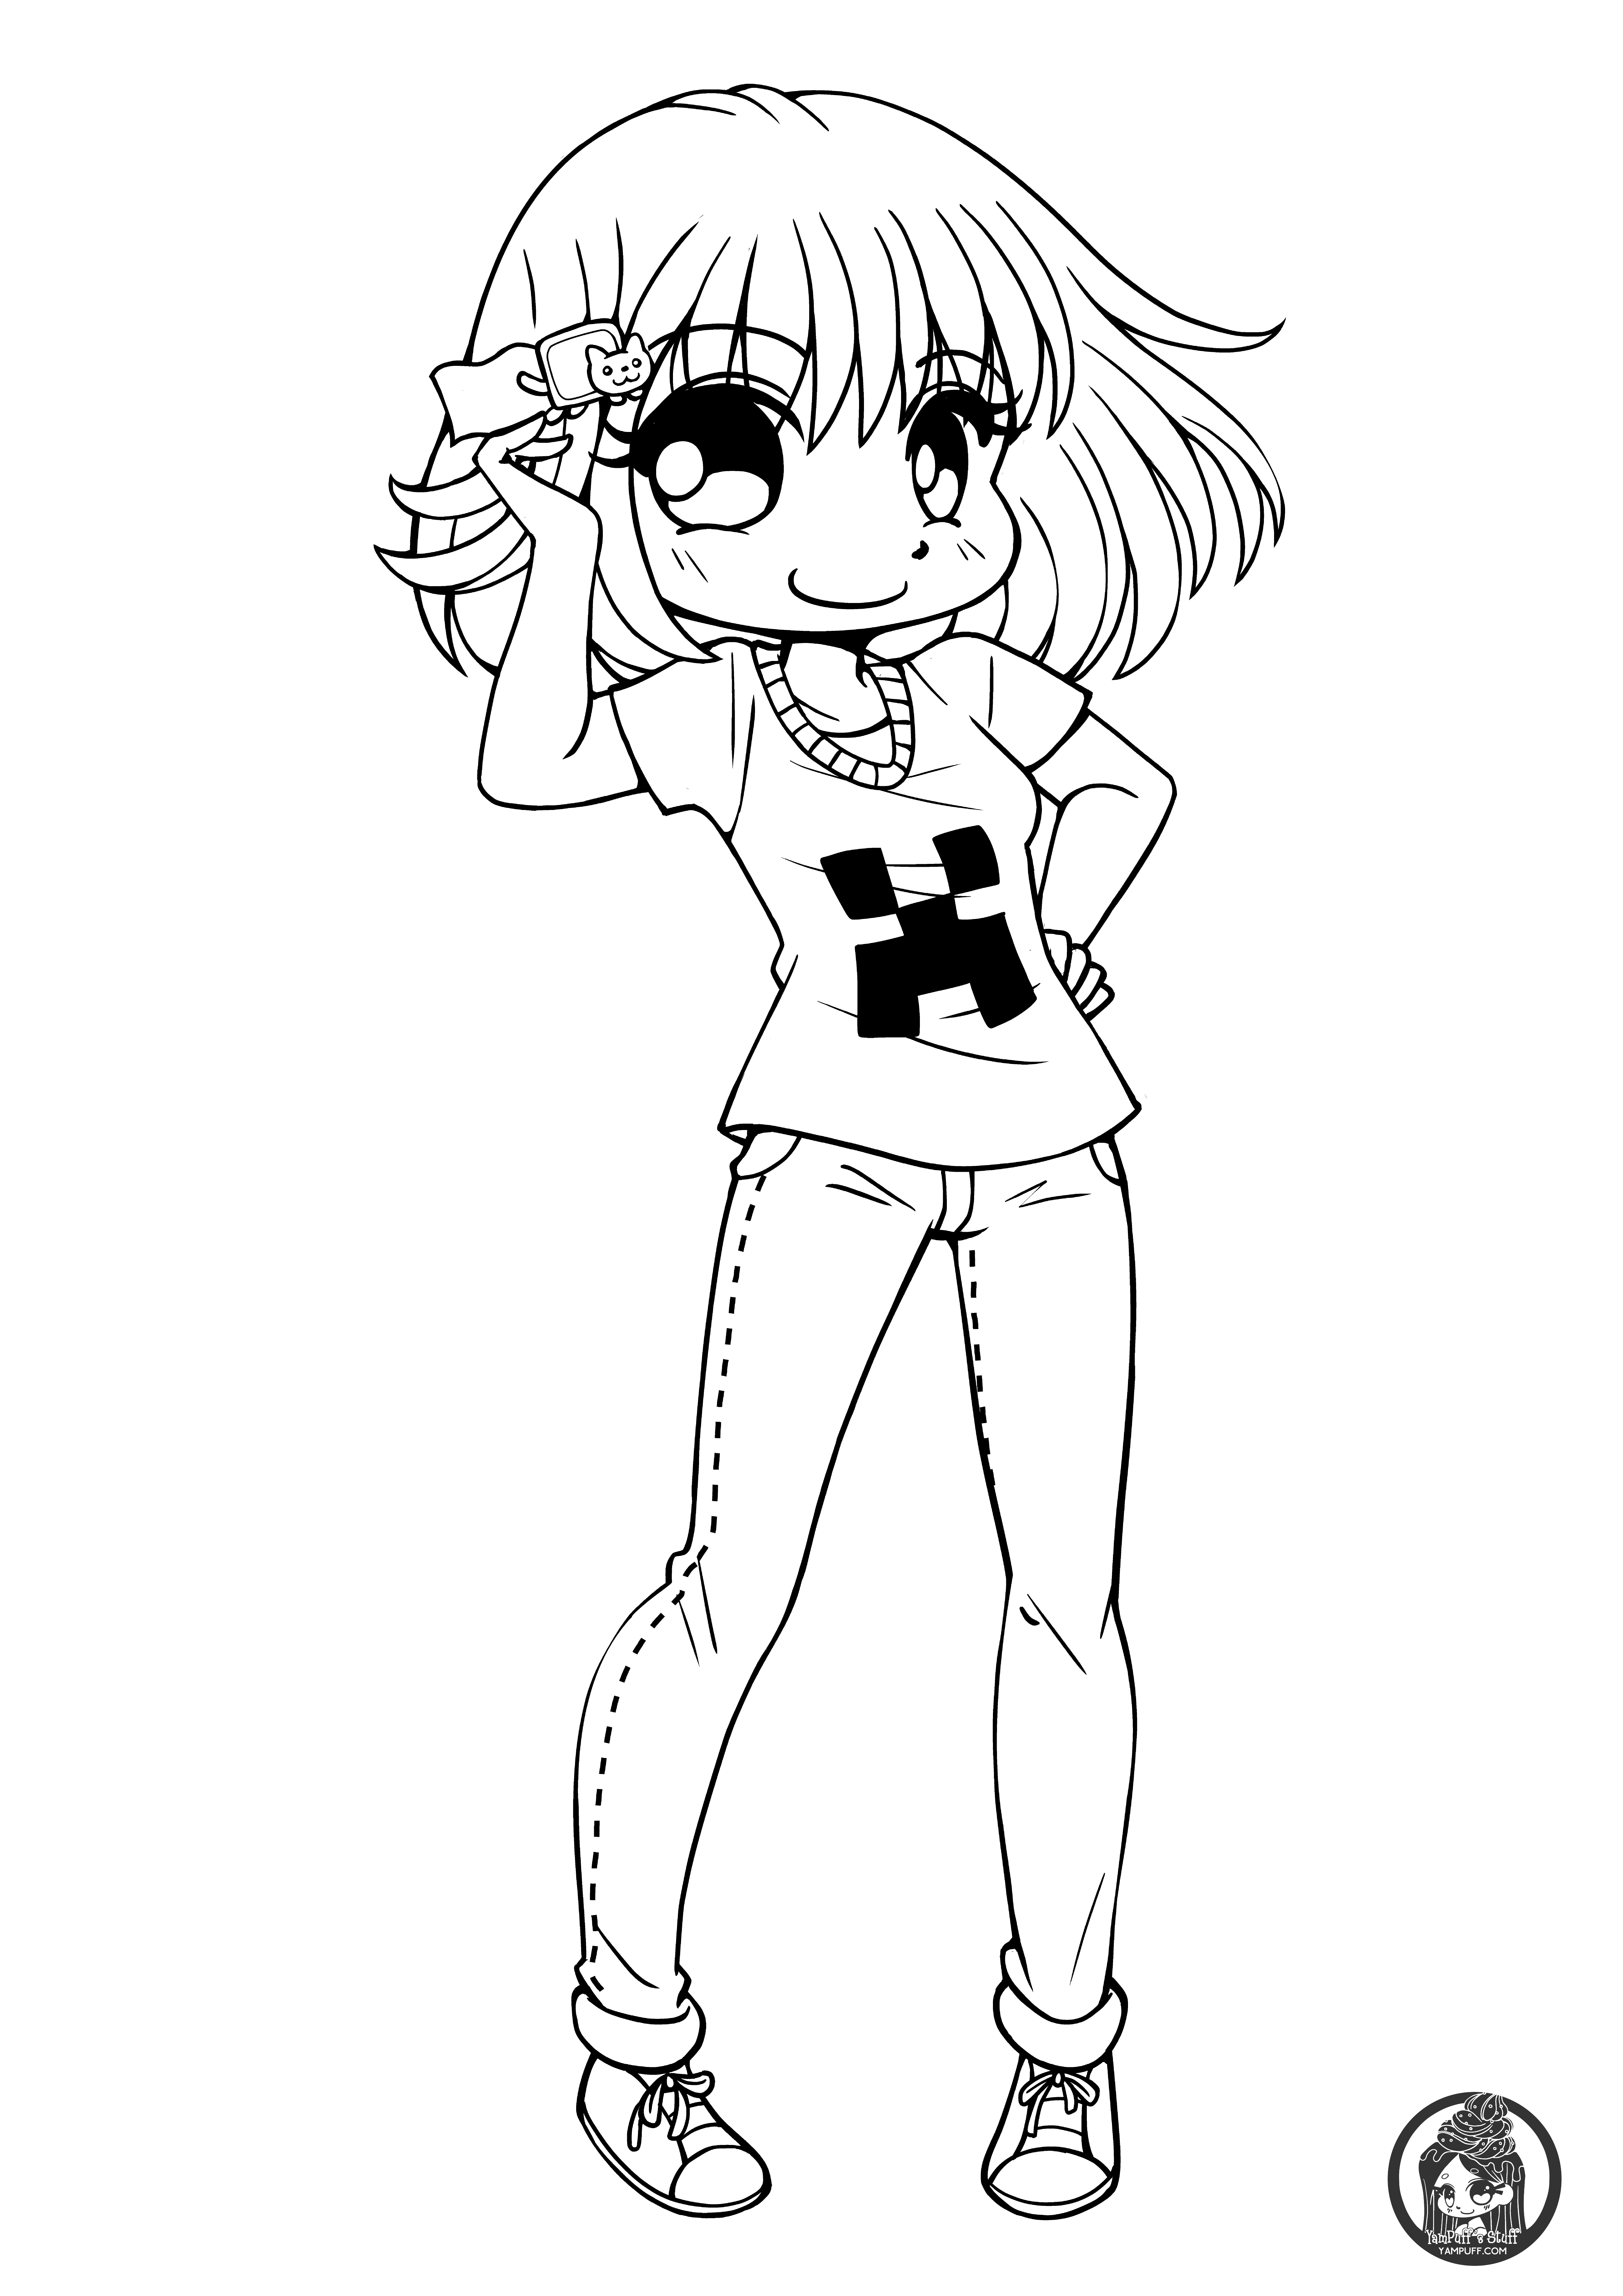 images of anime coloring pages cute hamtaro coloring page for kids manga anime coloring pages of anime images coloring